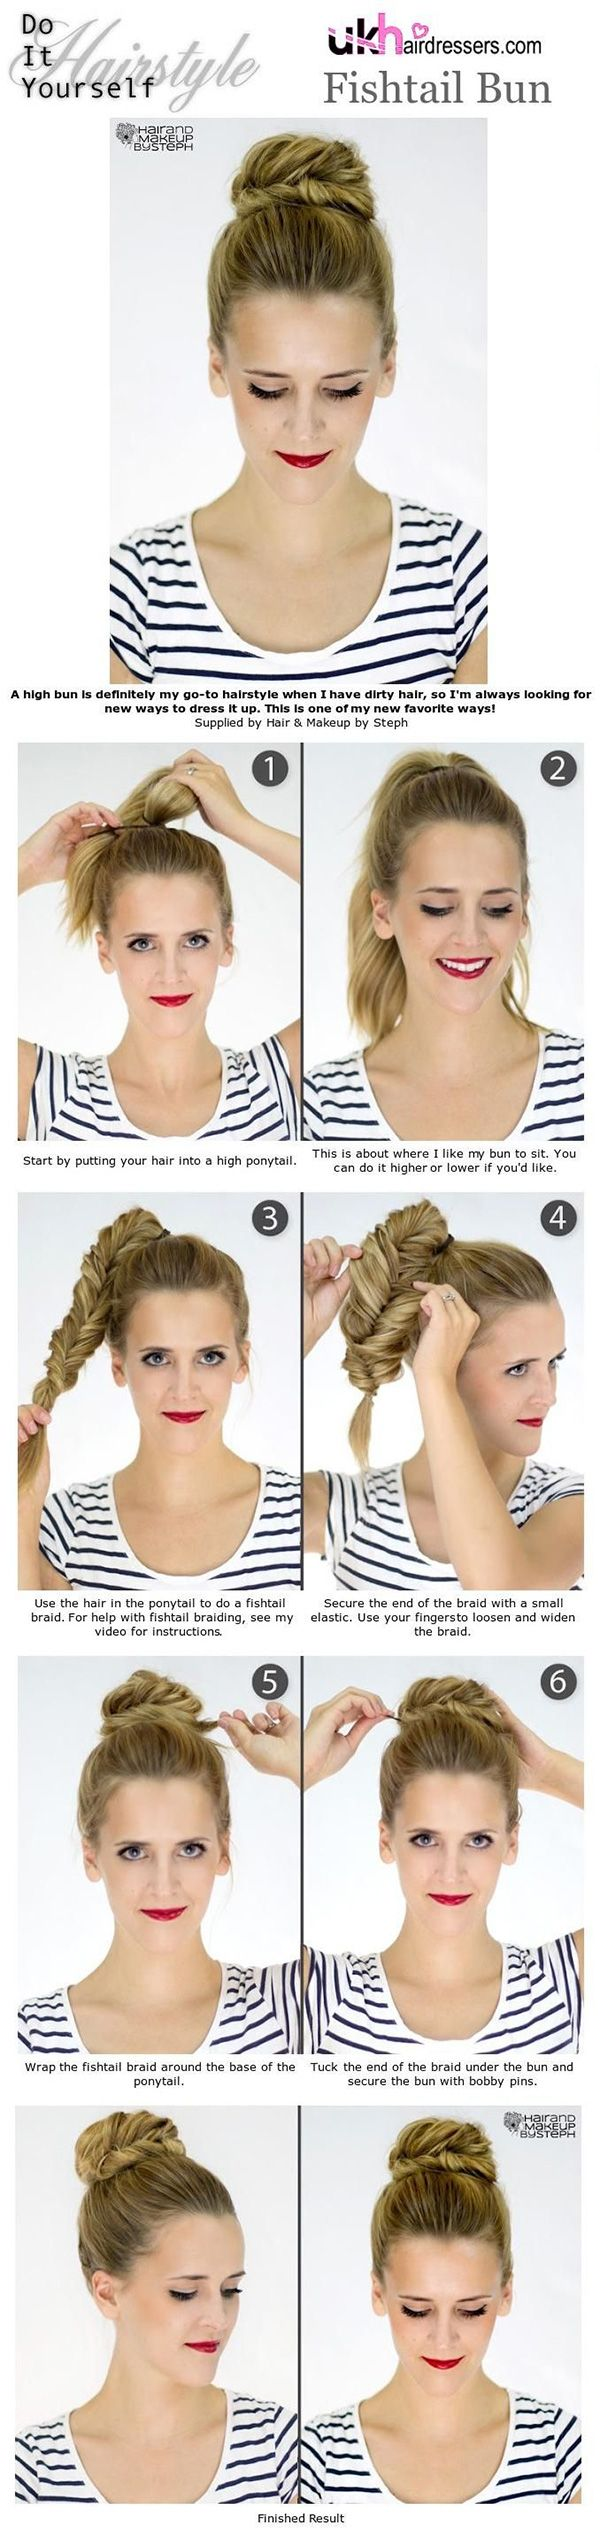 15 Easy No-Heat Hairstyles For Dirty Hair, Long Or Short | Gurl.com Another perfect dance bun